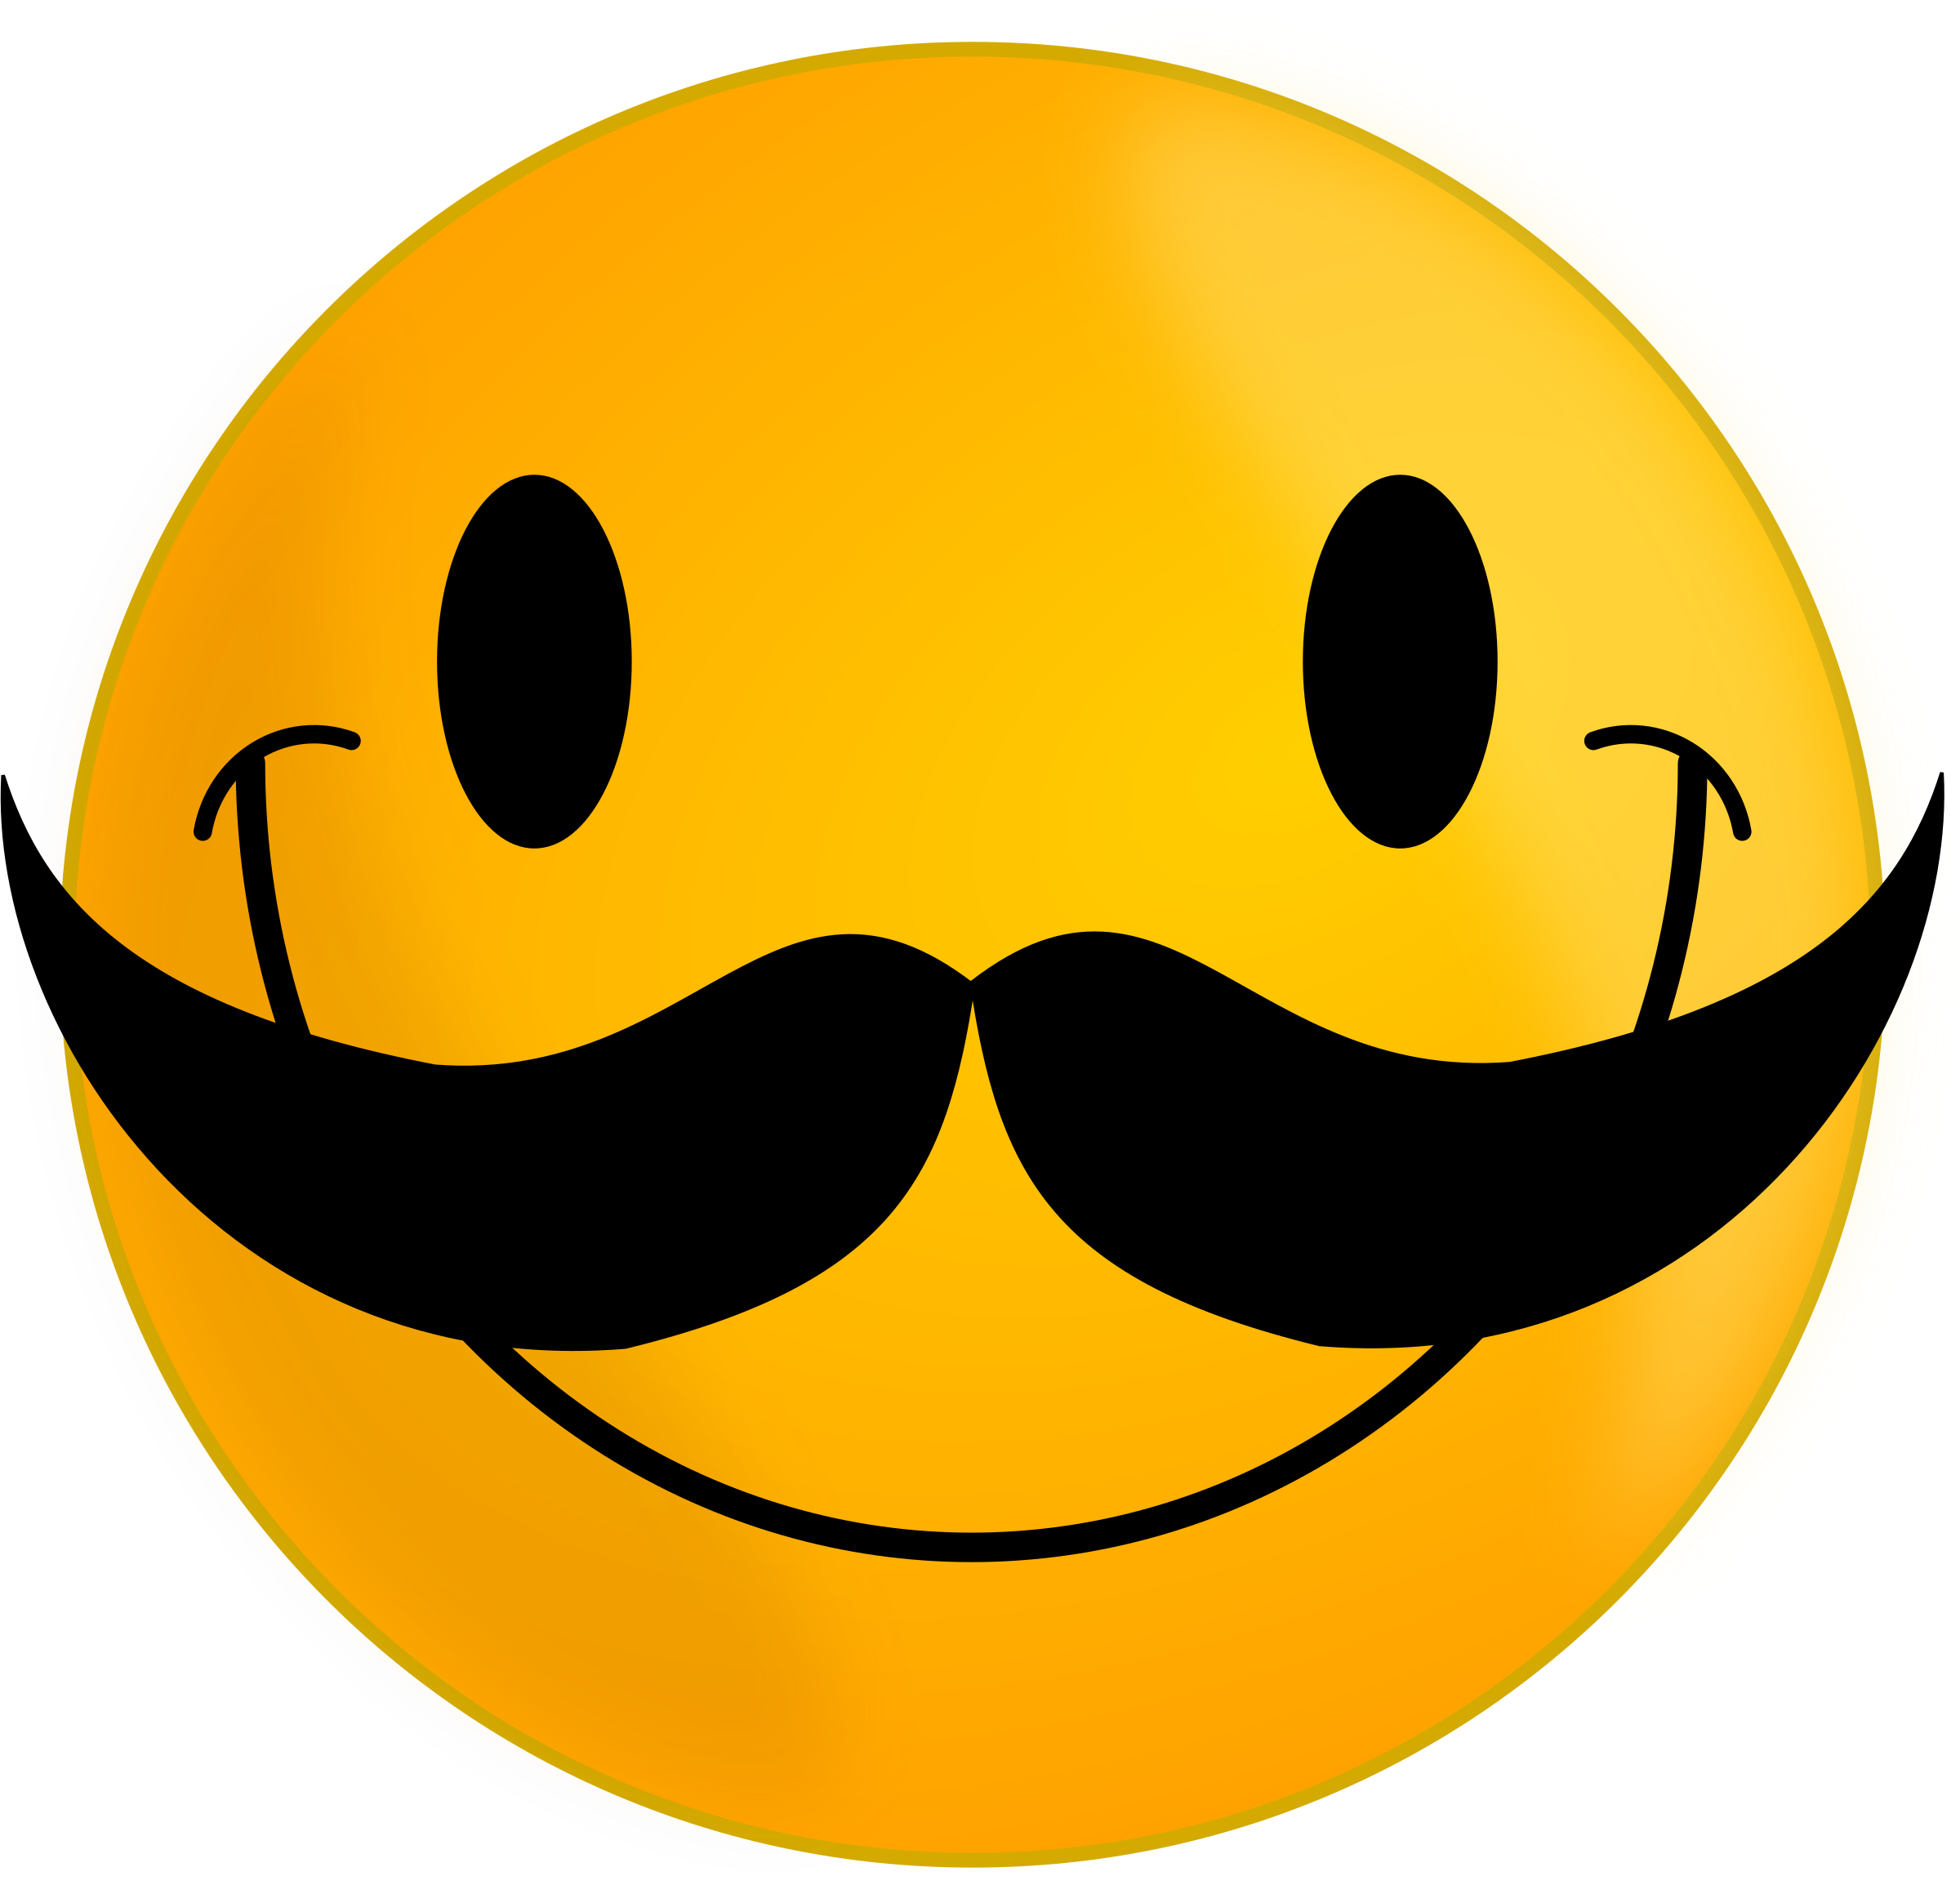 Smile Backgrounds on Wallpapers Vista